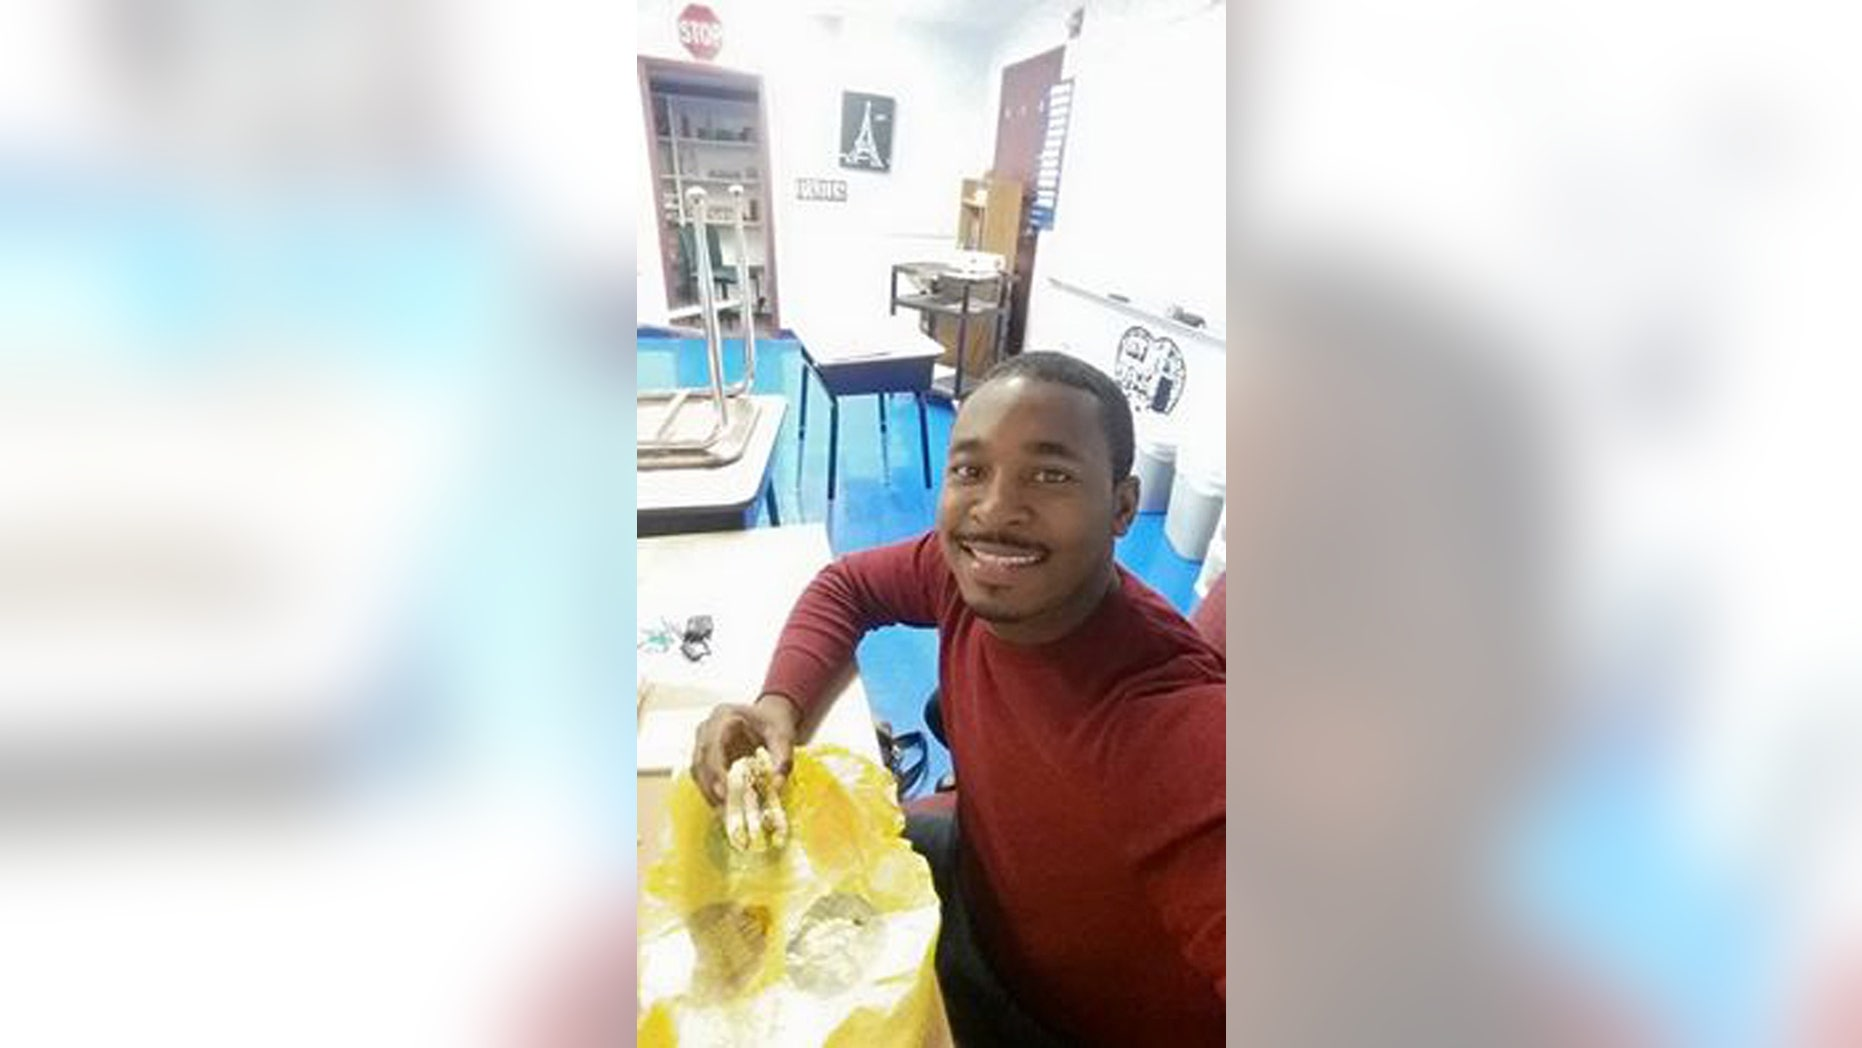 This photo provided by Beverly Smith shows her son, Alonzo Smith. Two security guards investigated in the death of the special education teacher who died after being taken into custody at a District of Columbia apartment building will not face charges, prosecutors said Thursday, Oct. 13, 2016. (Beverly Smith via AP)